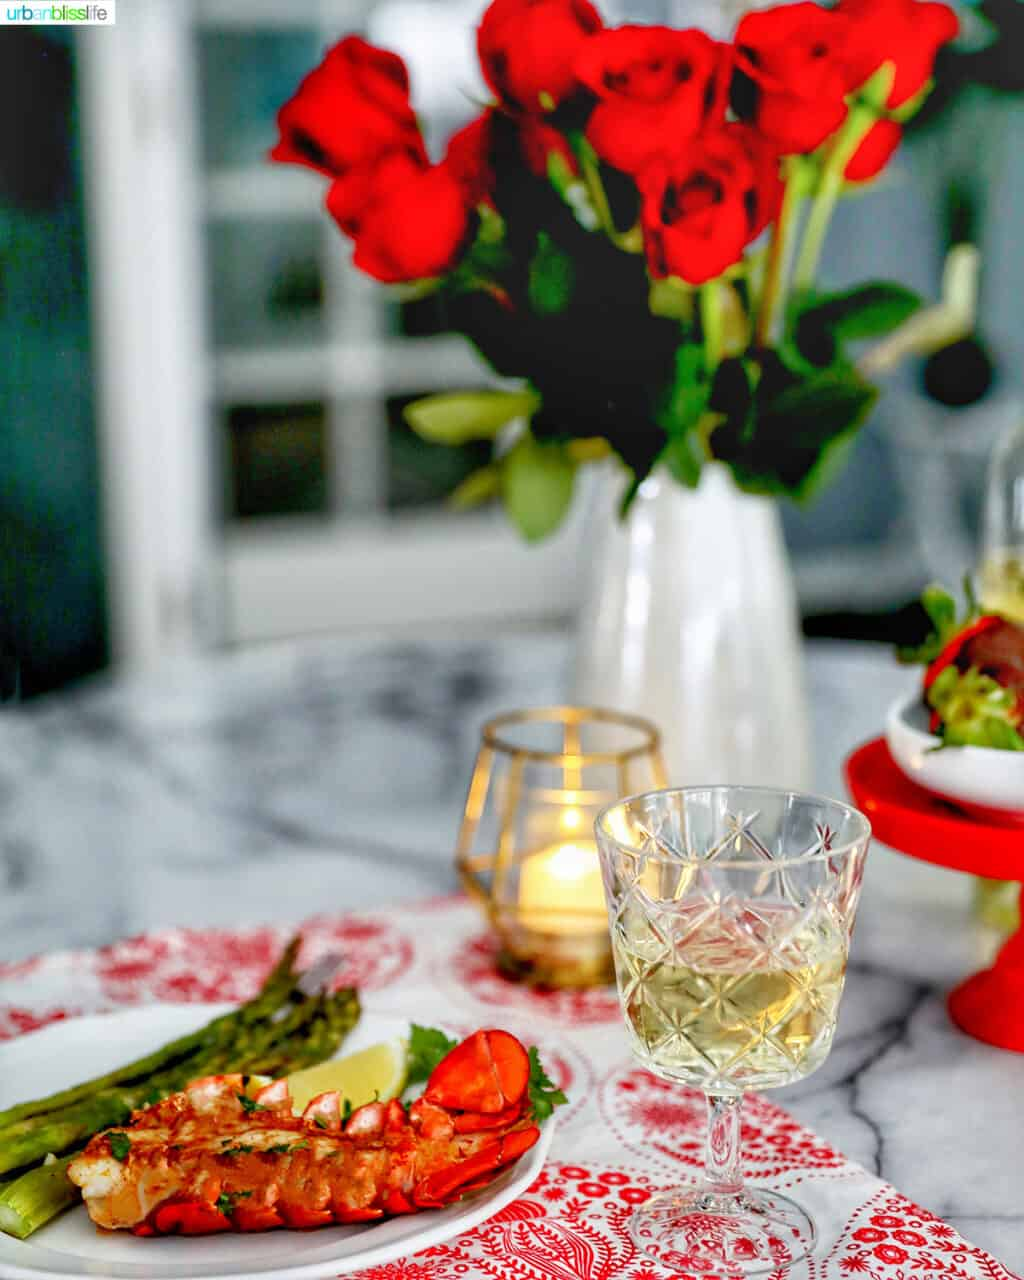 Valentine's Day dinner lobster chocolate covered strawberries, roses, candles, and wine